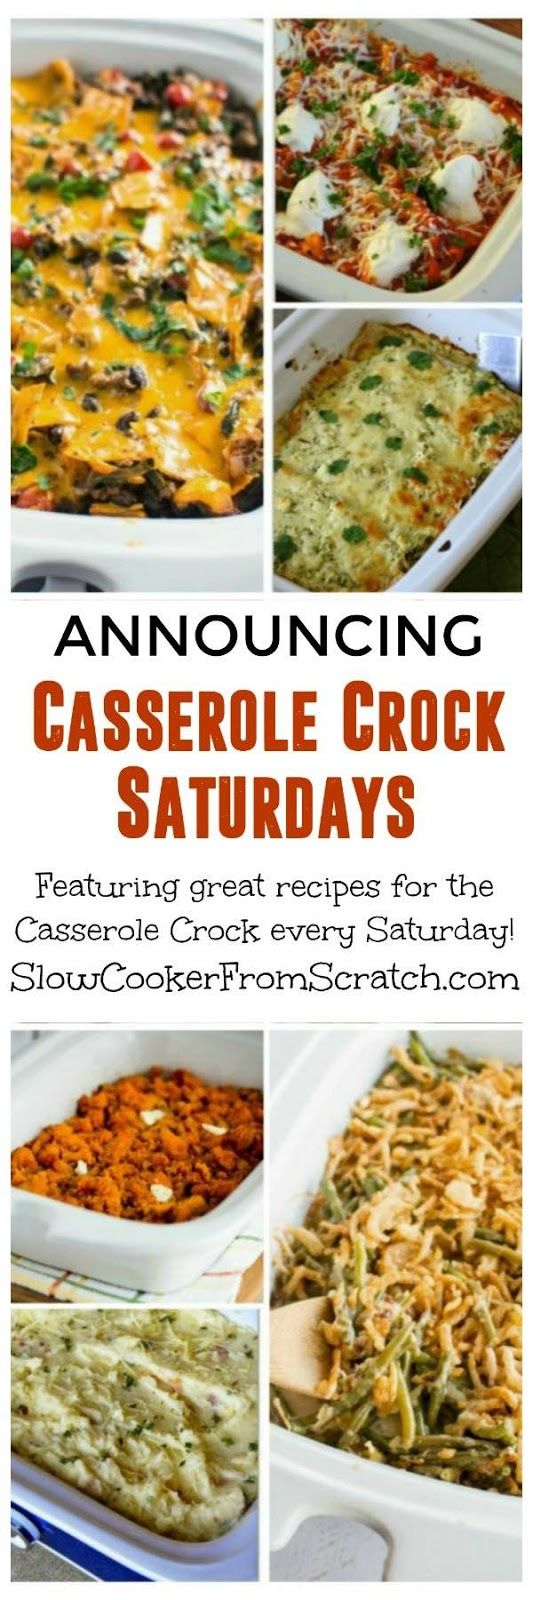 Announcing Casserole Crock Saturdays and Recipes for the New Crock-Pot Casserole Crock Slow Cooker! Visit the site every Saturday to get a recipe idea for the Casserole Crock slow cooker that's shaped like a casserole dish; this round-up post starts it off with a good collection of casserole crock recipes. [found on SlowCookerFromScratch.com]